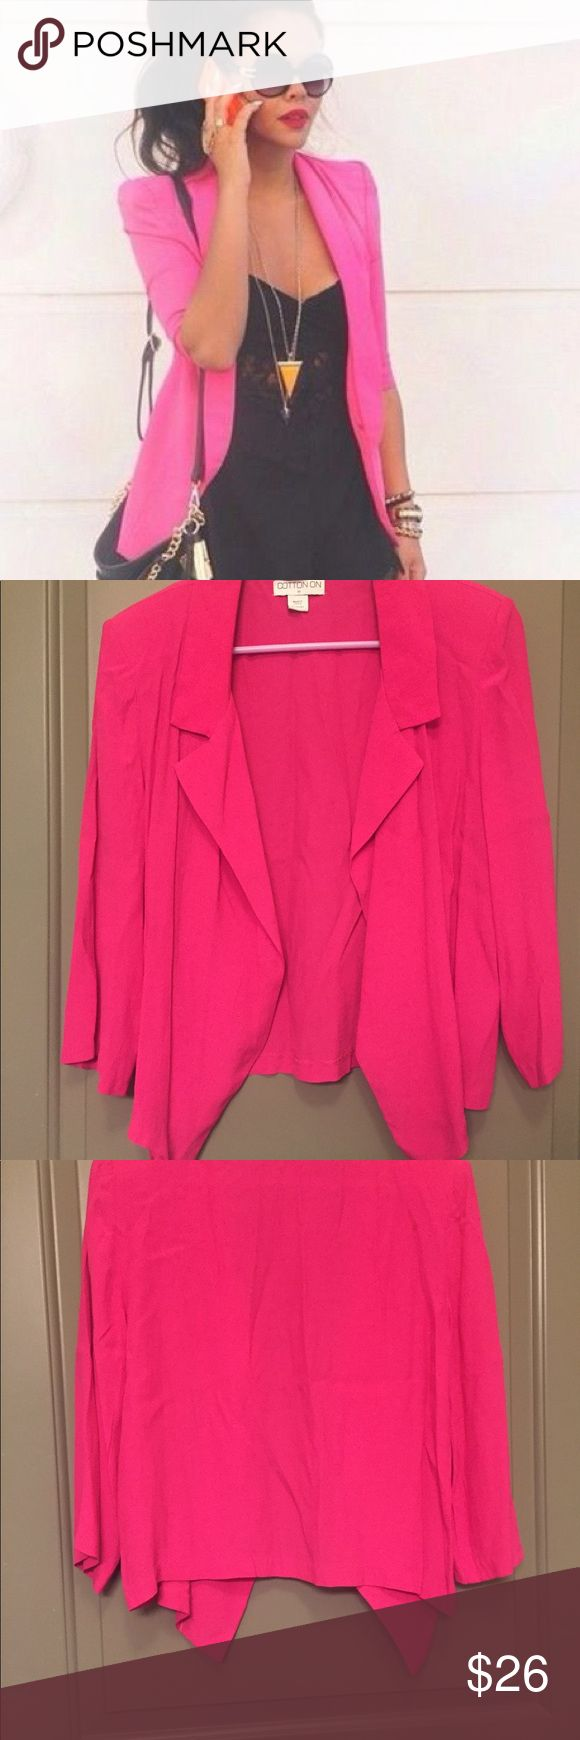 Hot pink Blazer This Blazer is so cute and comfy. Only worn once. I bought it in New Zealand. It has small shoulder pads sewn in. Cotton On Jackets & Coats Blazers